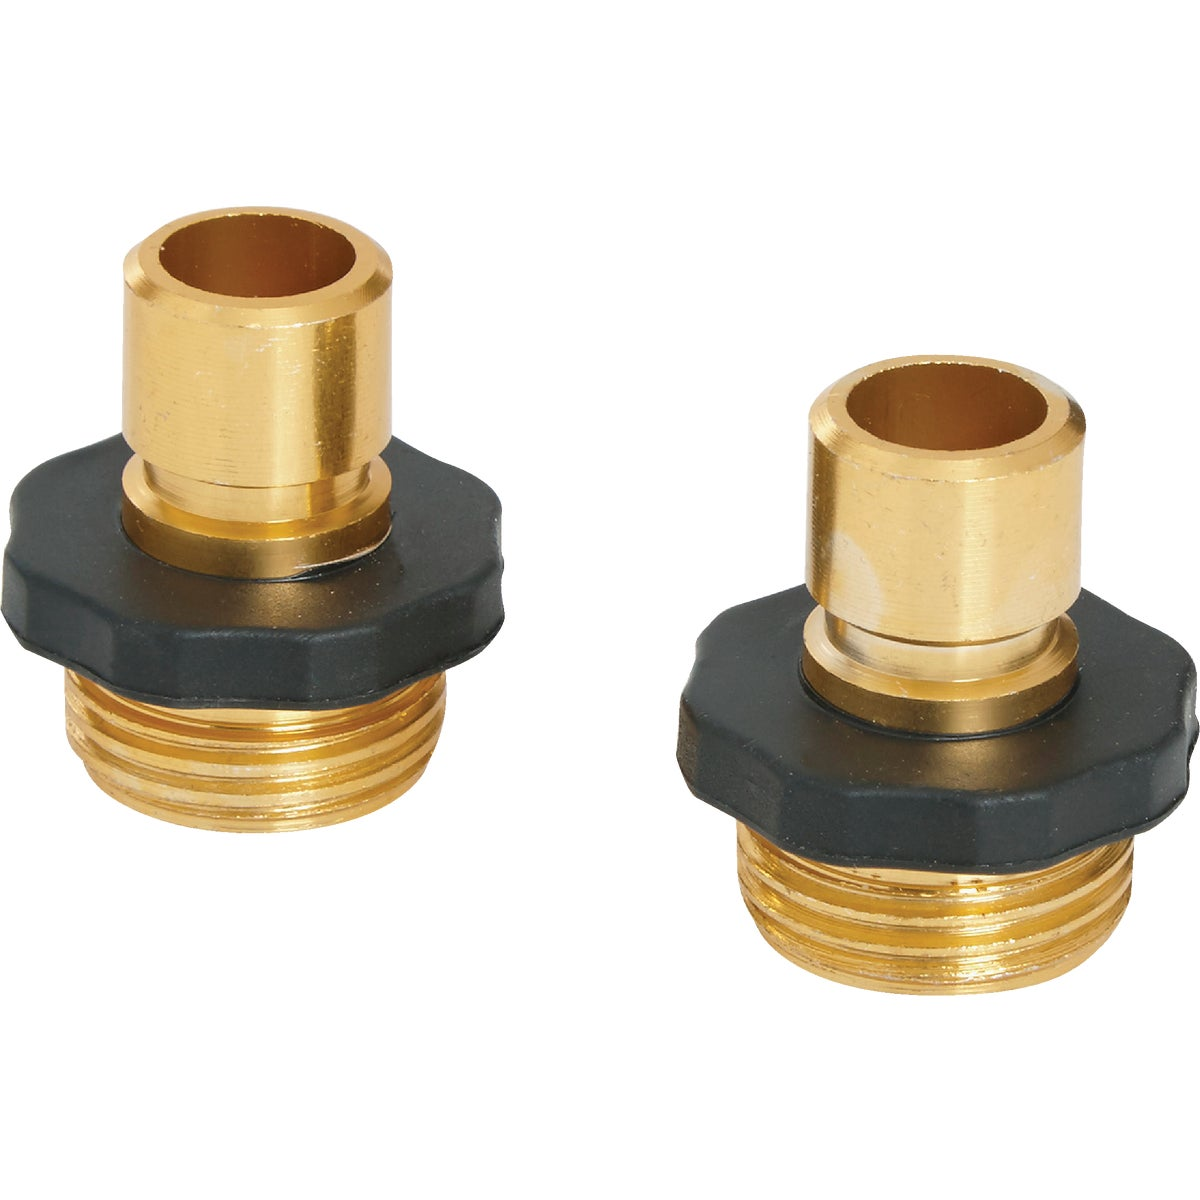 MALE QUICK BRASS COUPLER - DIB09QCM by Bosch G W